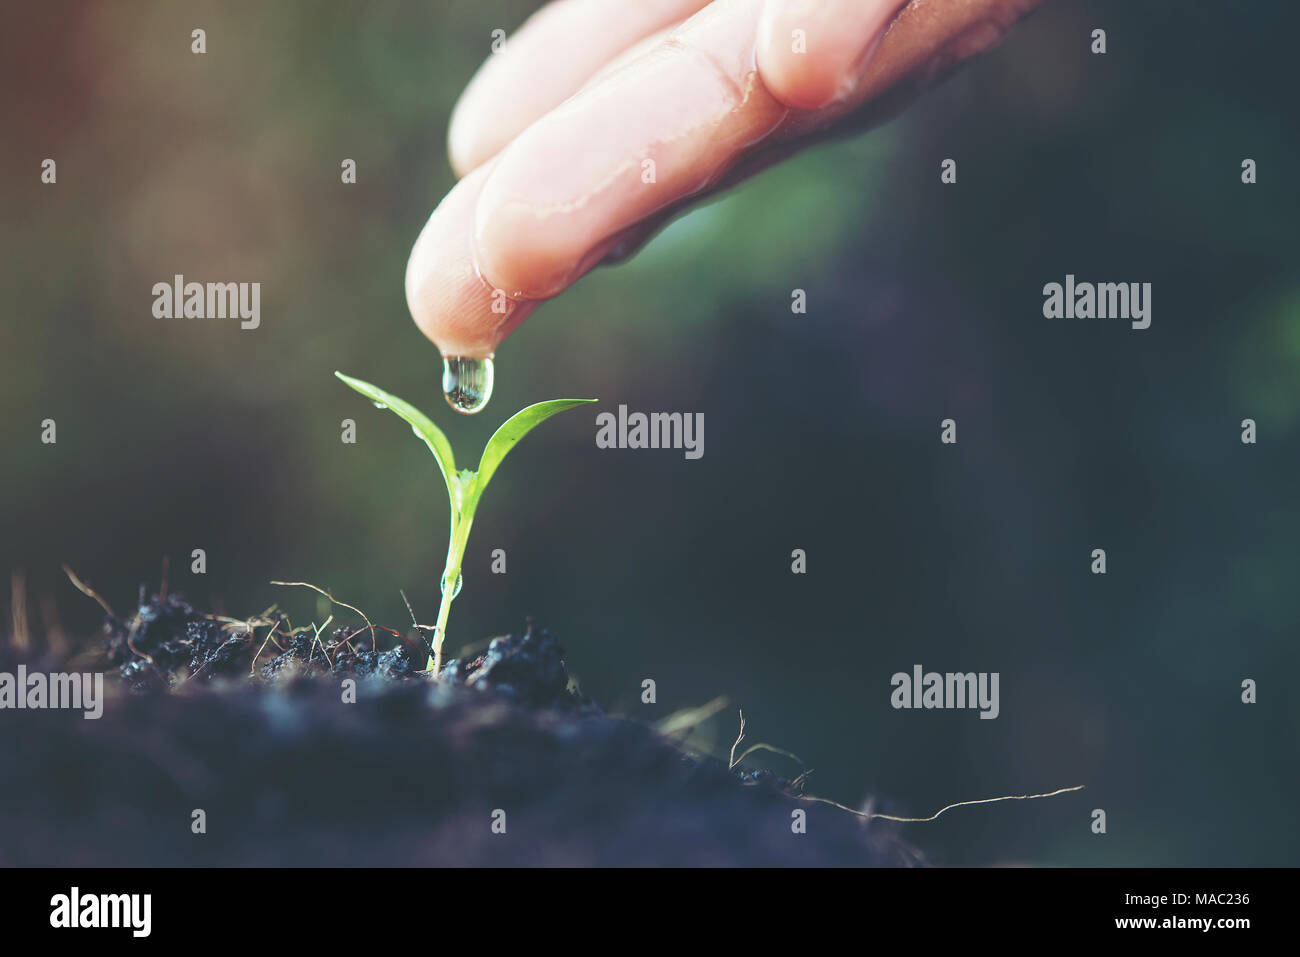 close up woman hand watering a green young plant - Stock Image